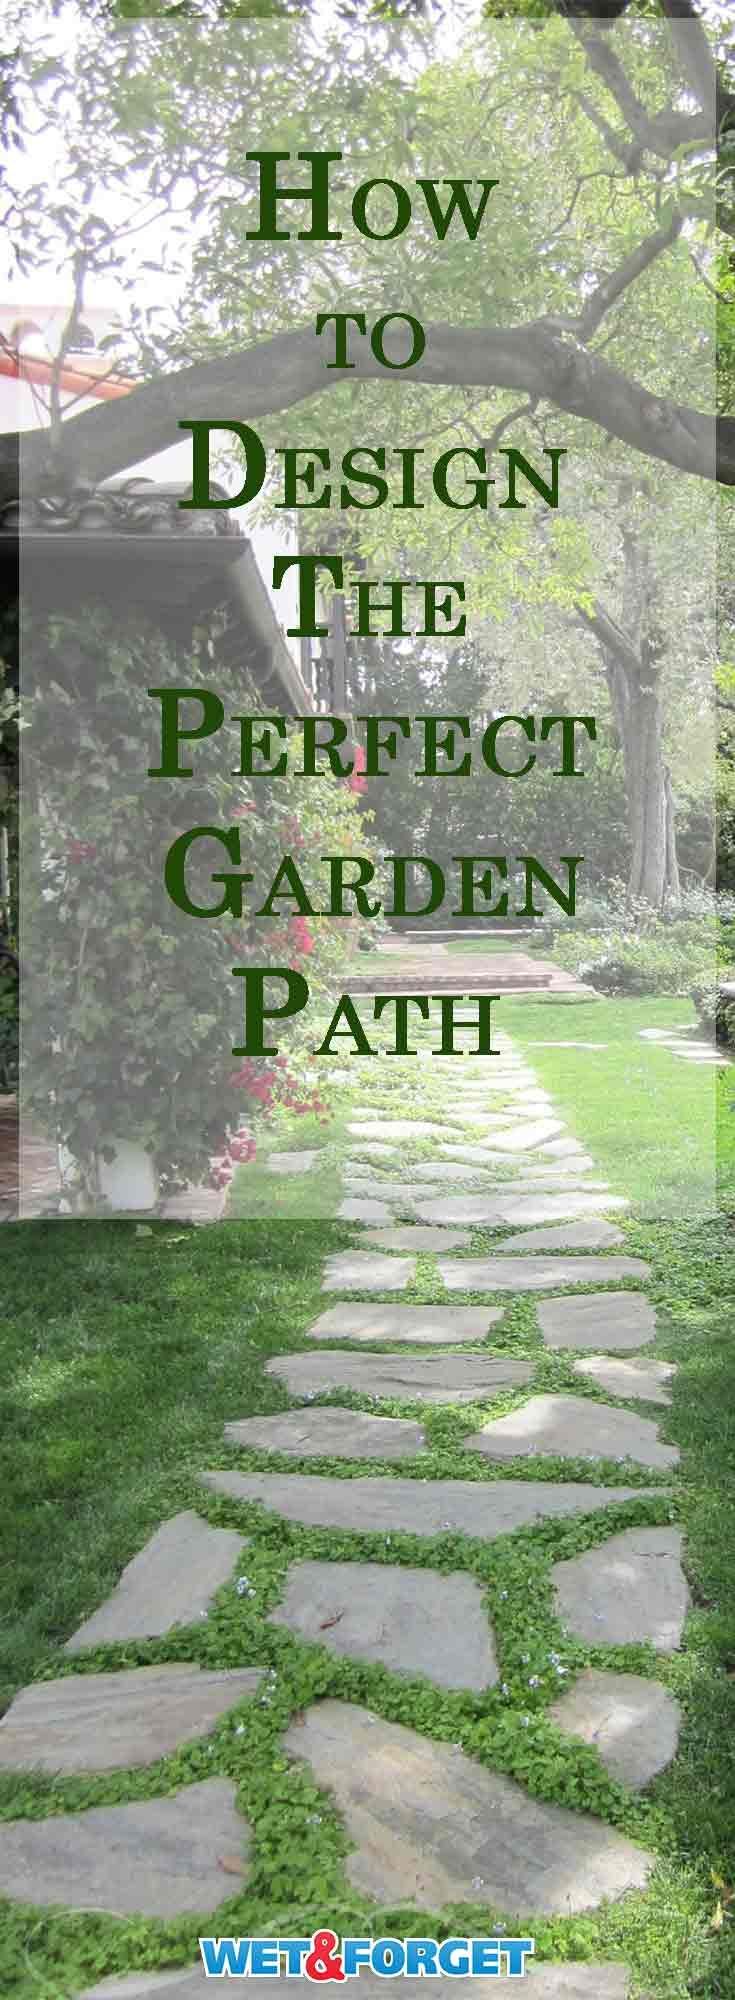 Most beautiful gardens - The Most Beautiful Gardens Include Garden Paths That Please The Eye Invite A Stroll Around